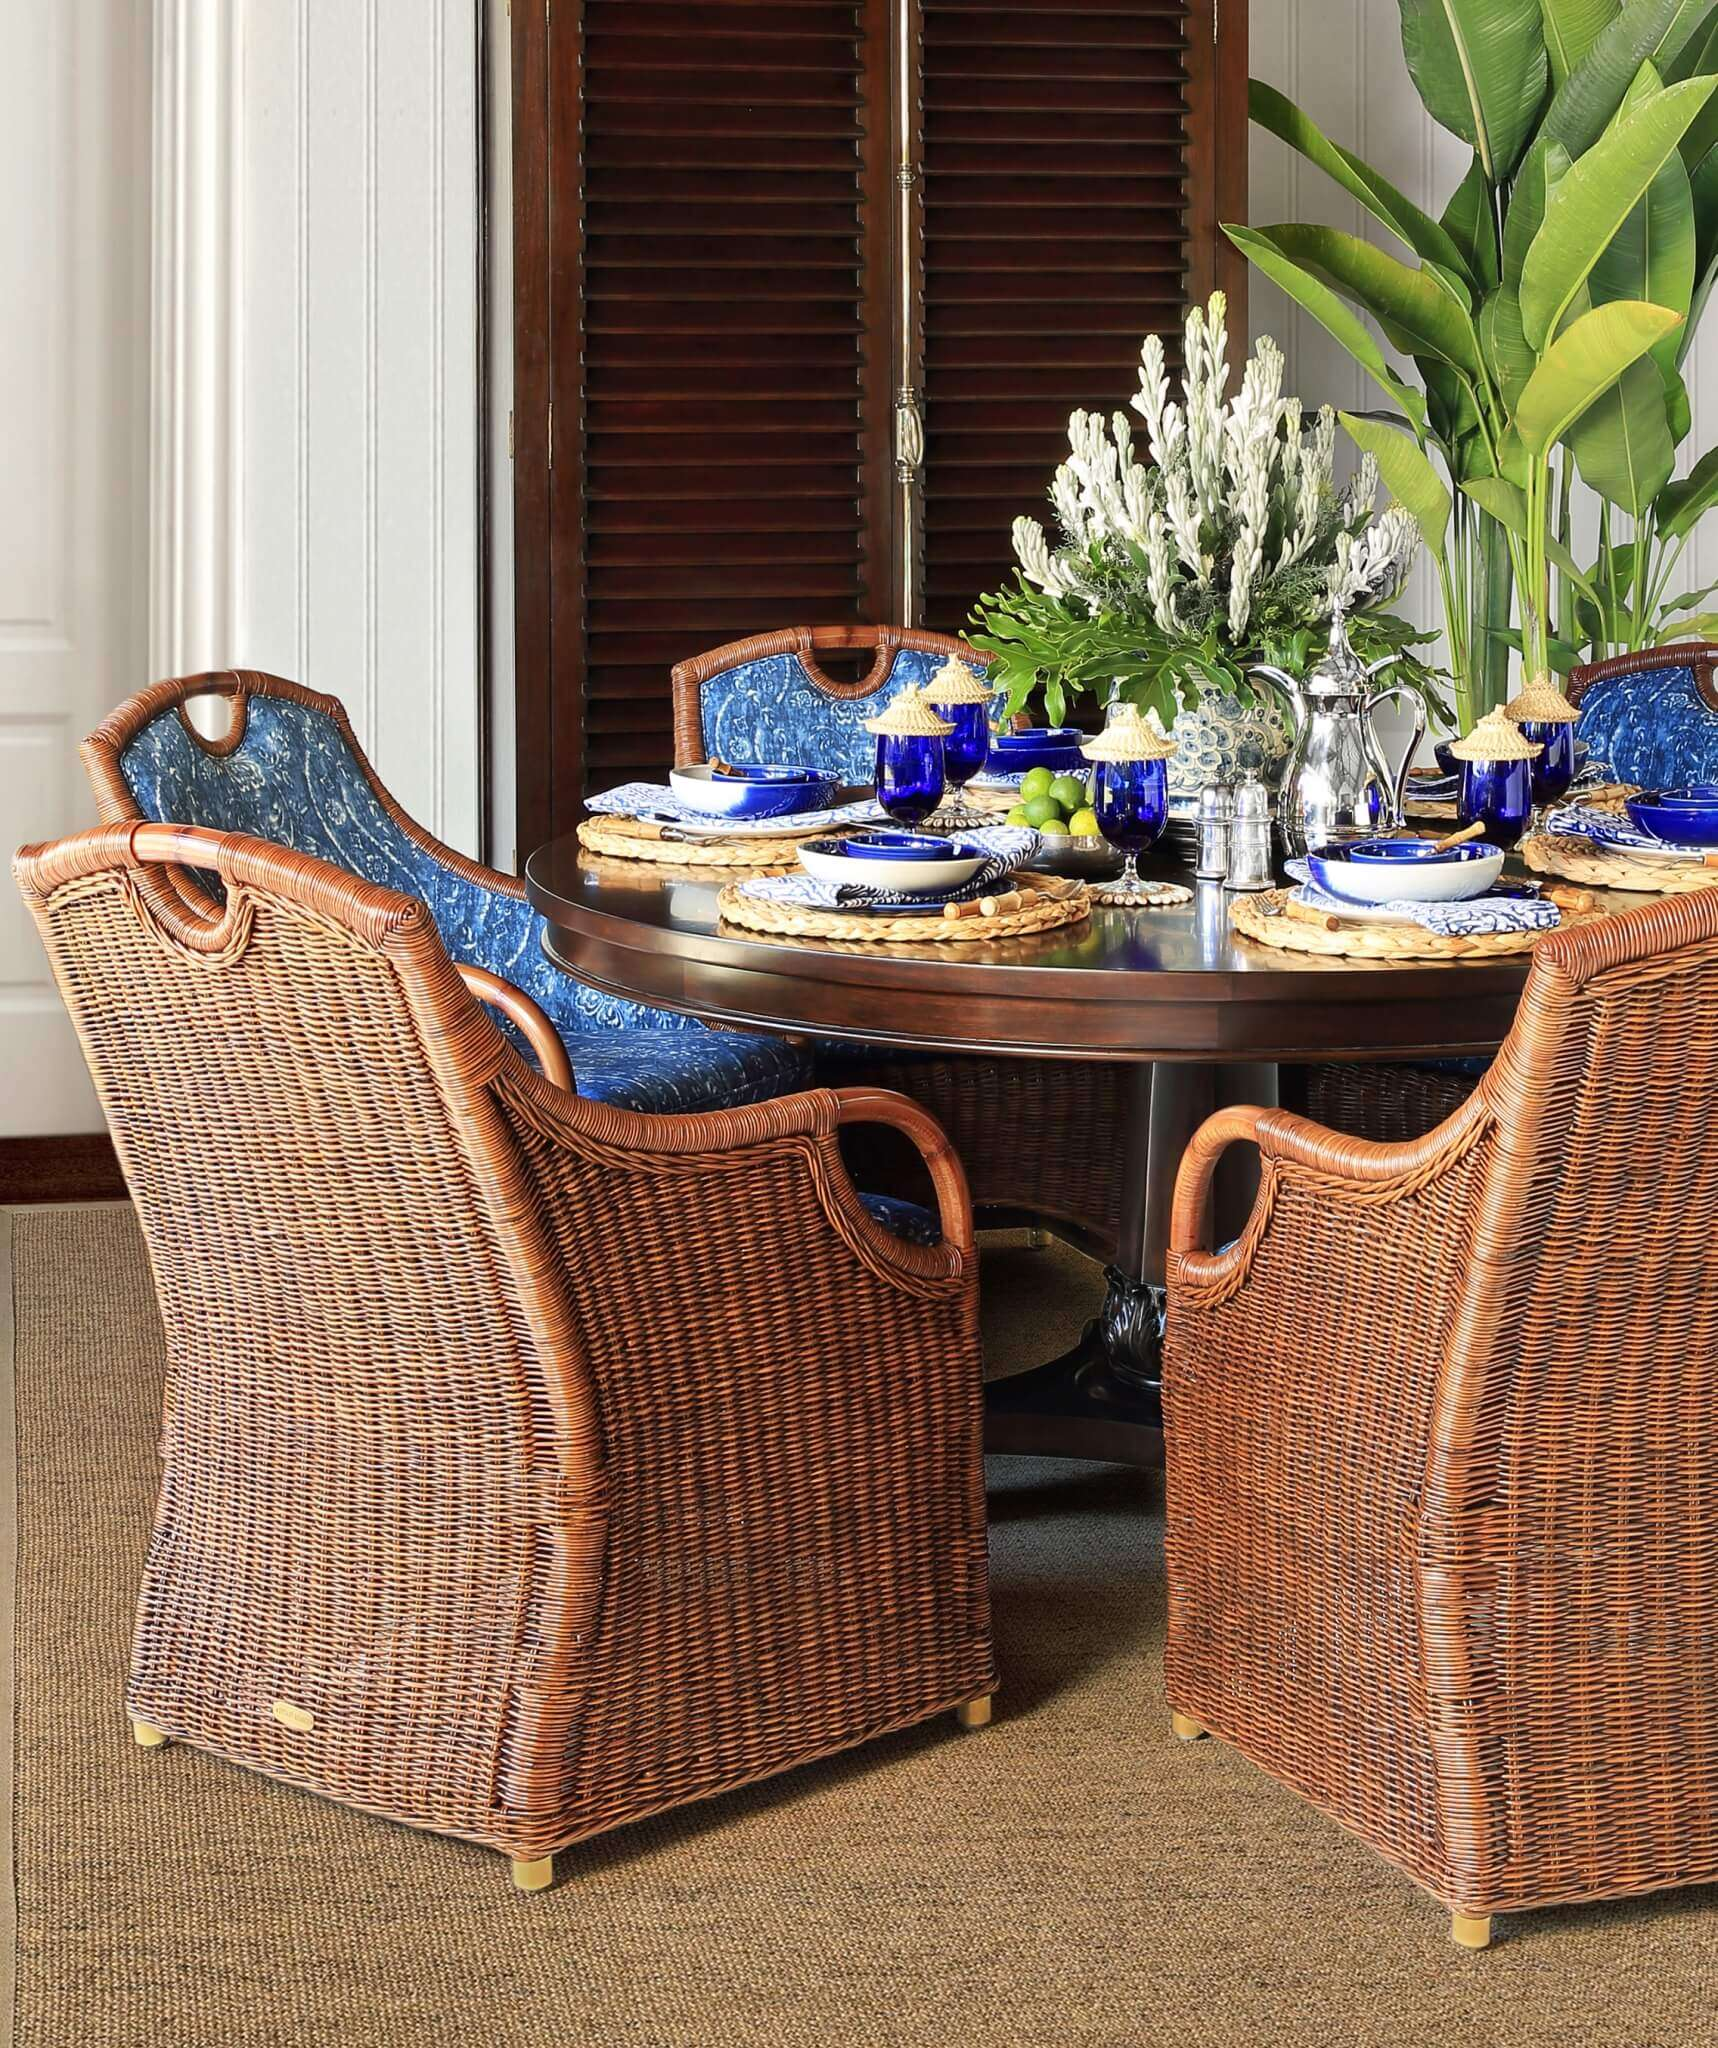 CABANA DINNIG CHAIRS 1 - STUART MEMBERY HOME COLLECTION